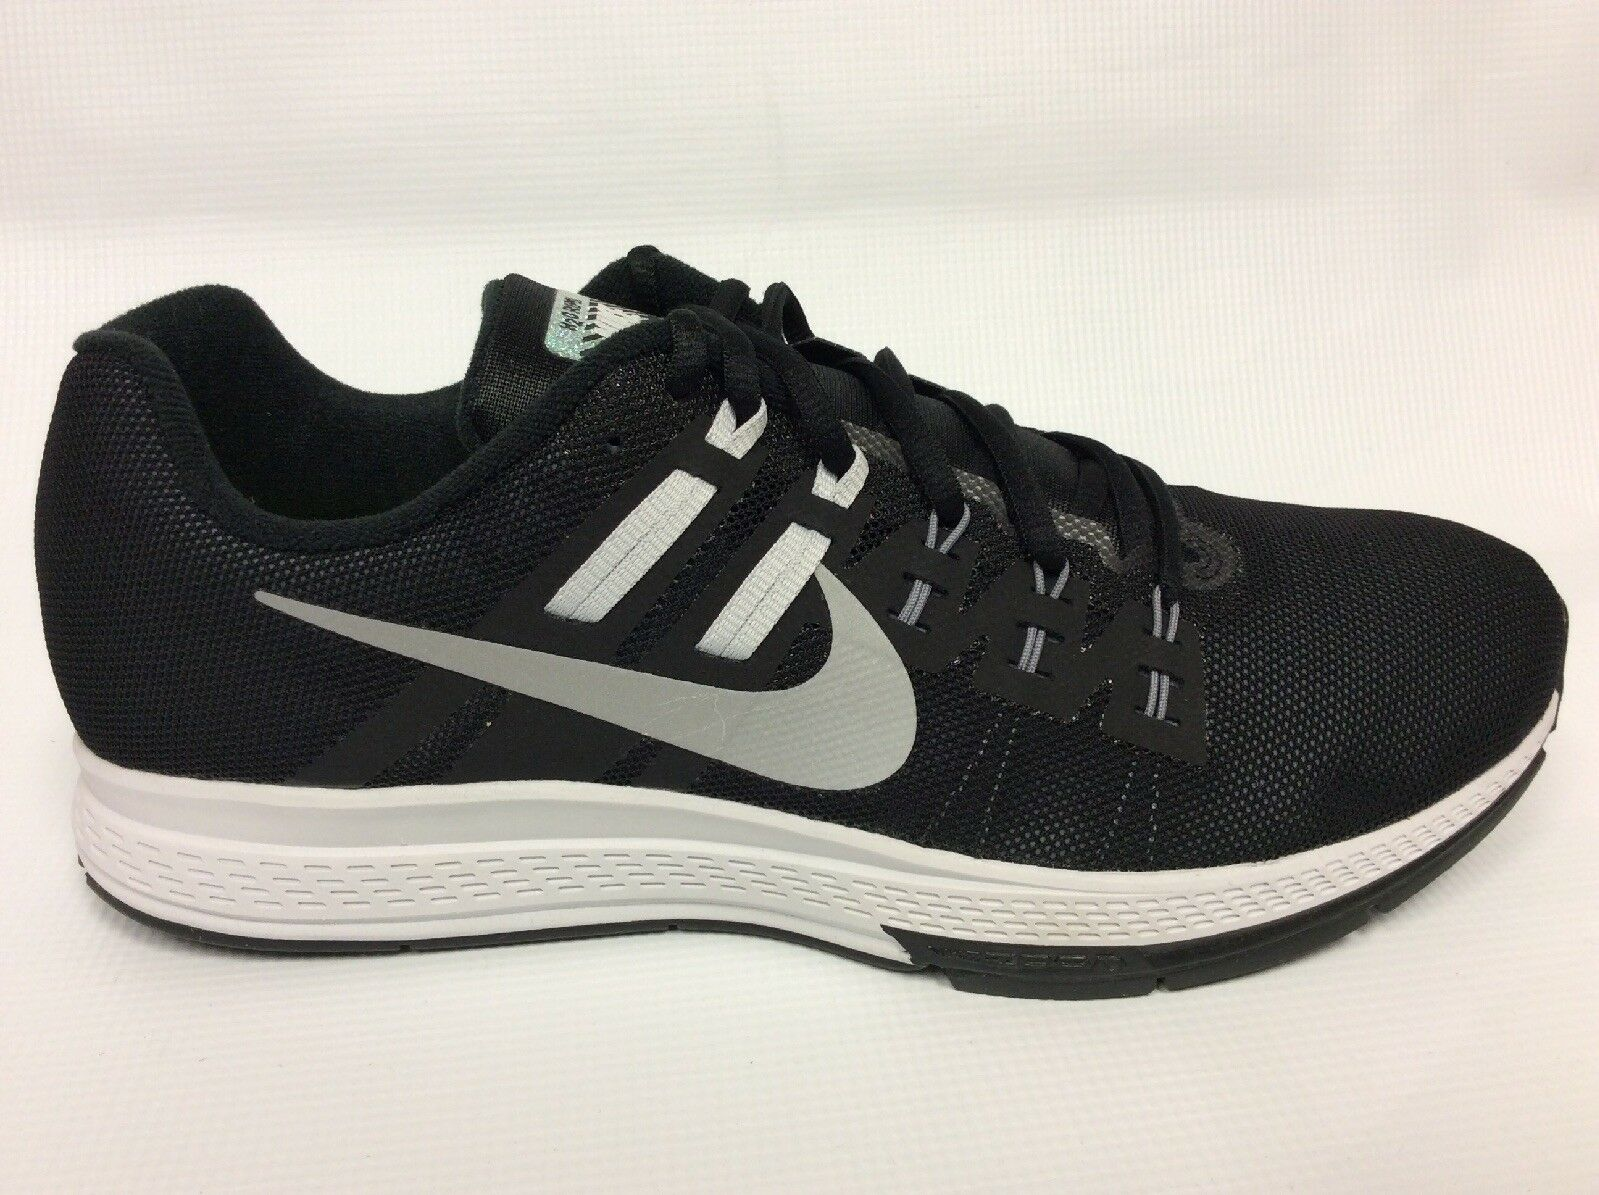 Nike Nike Nike Air Zoom Structure 19 Flash Running shoes 806578-001 US Men's Size 10 D NEW 8b4ceb